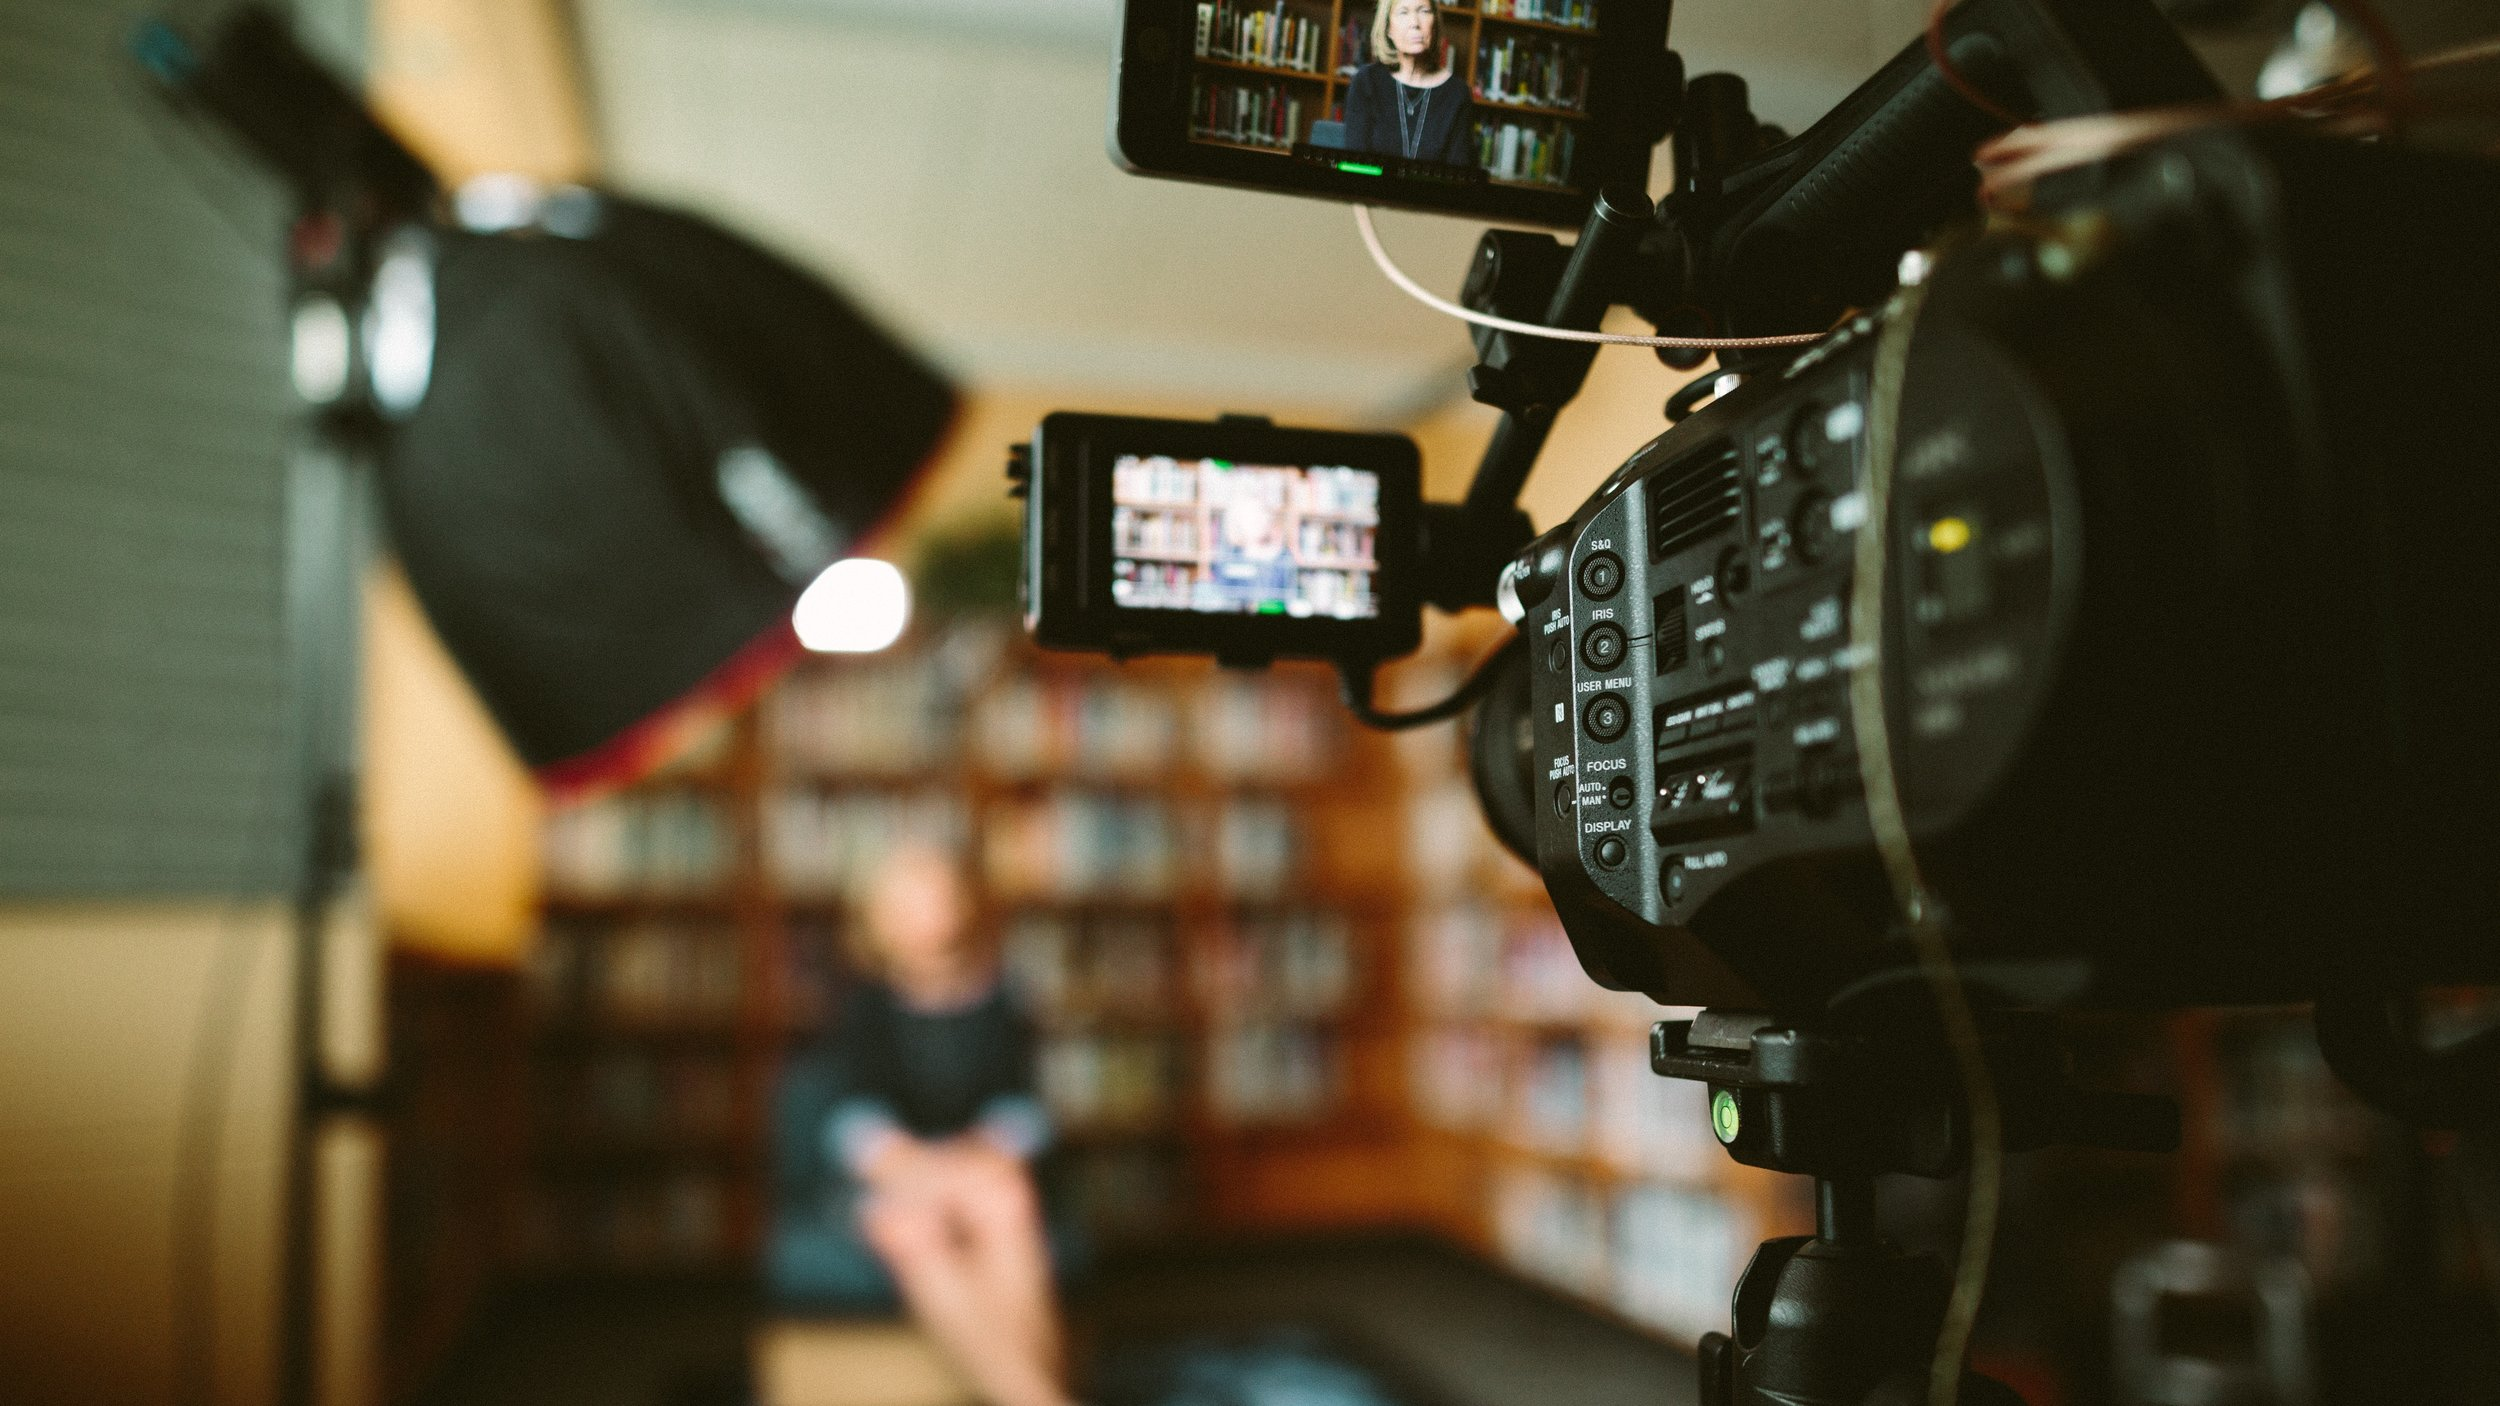 Video IS the future of content - Podium enables small, local newsrooms to create engaging video content with almost no video expertise.